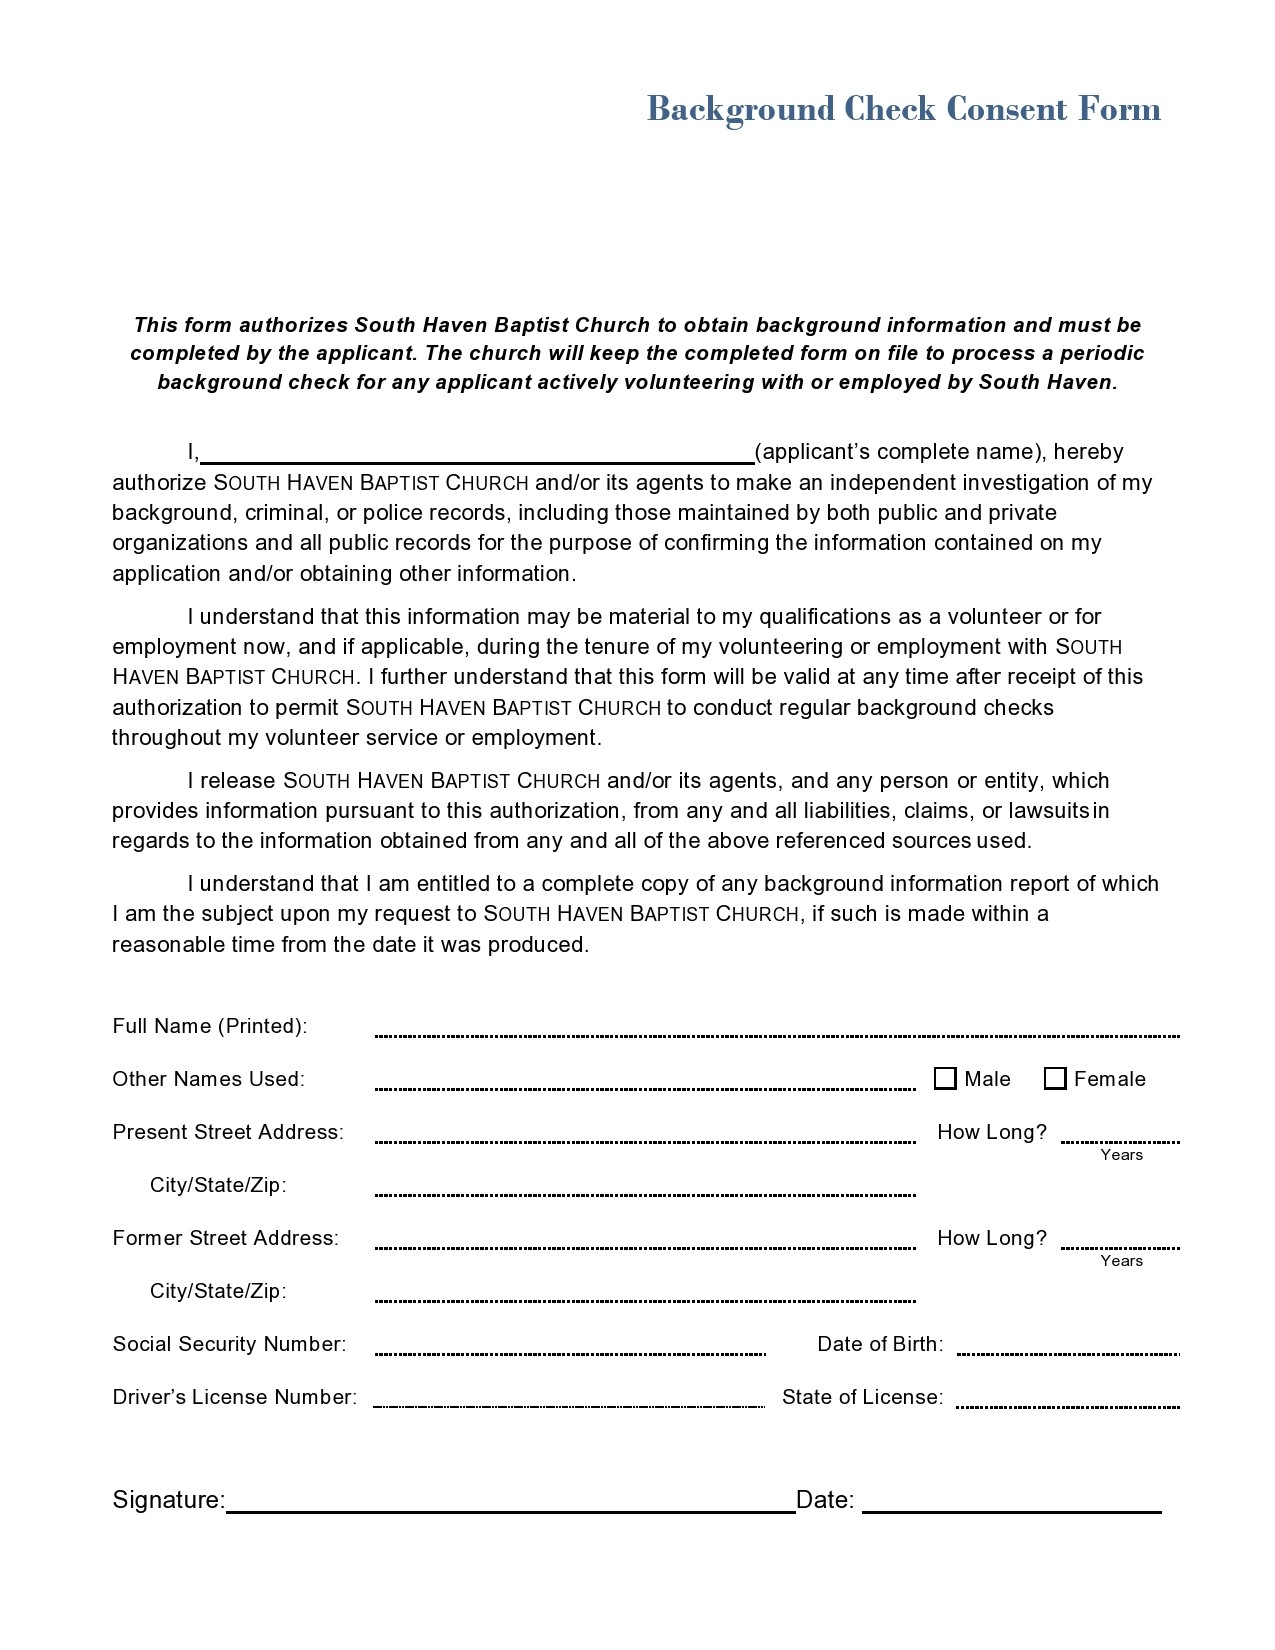 Free background check form 16